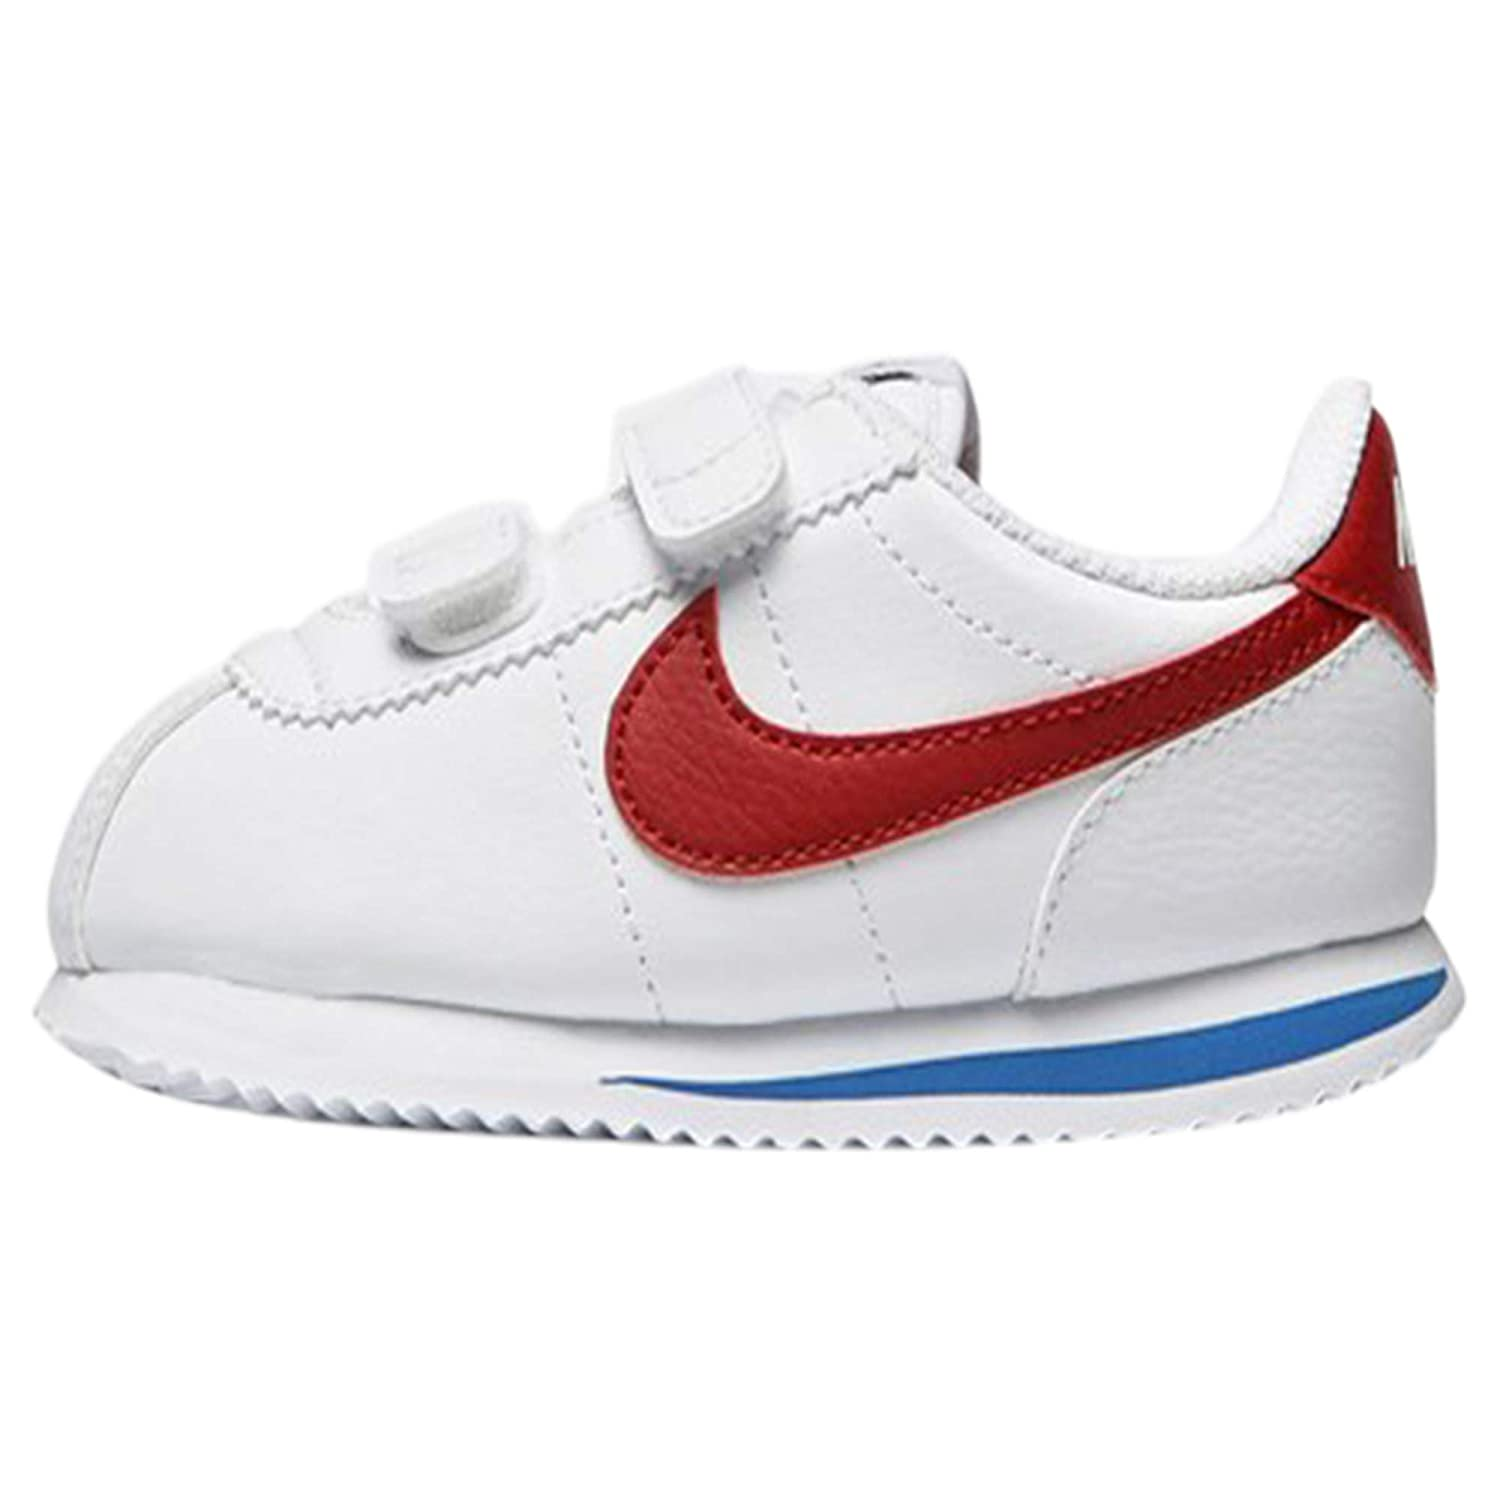 ca51f4e62 Amazon.com: Nike Men's Air Force 1 Ultraforce Hi Basketball Shoe: Nike:  Shoes